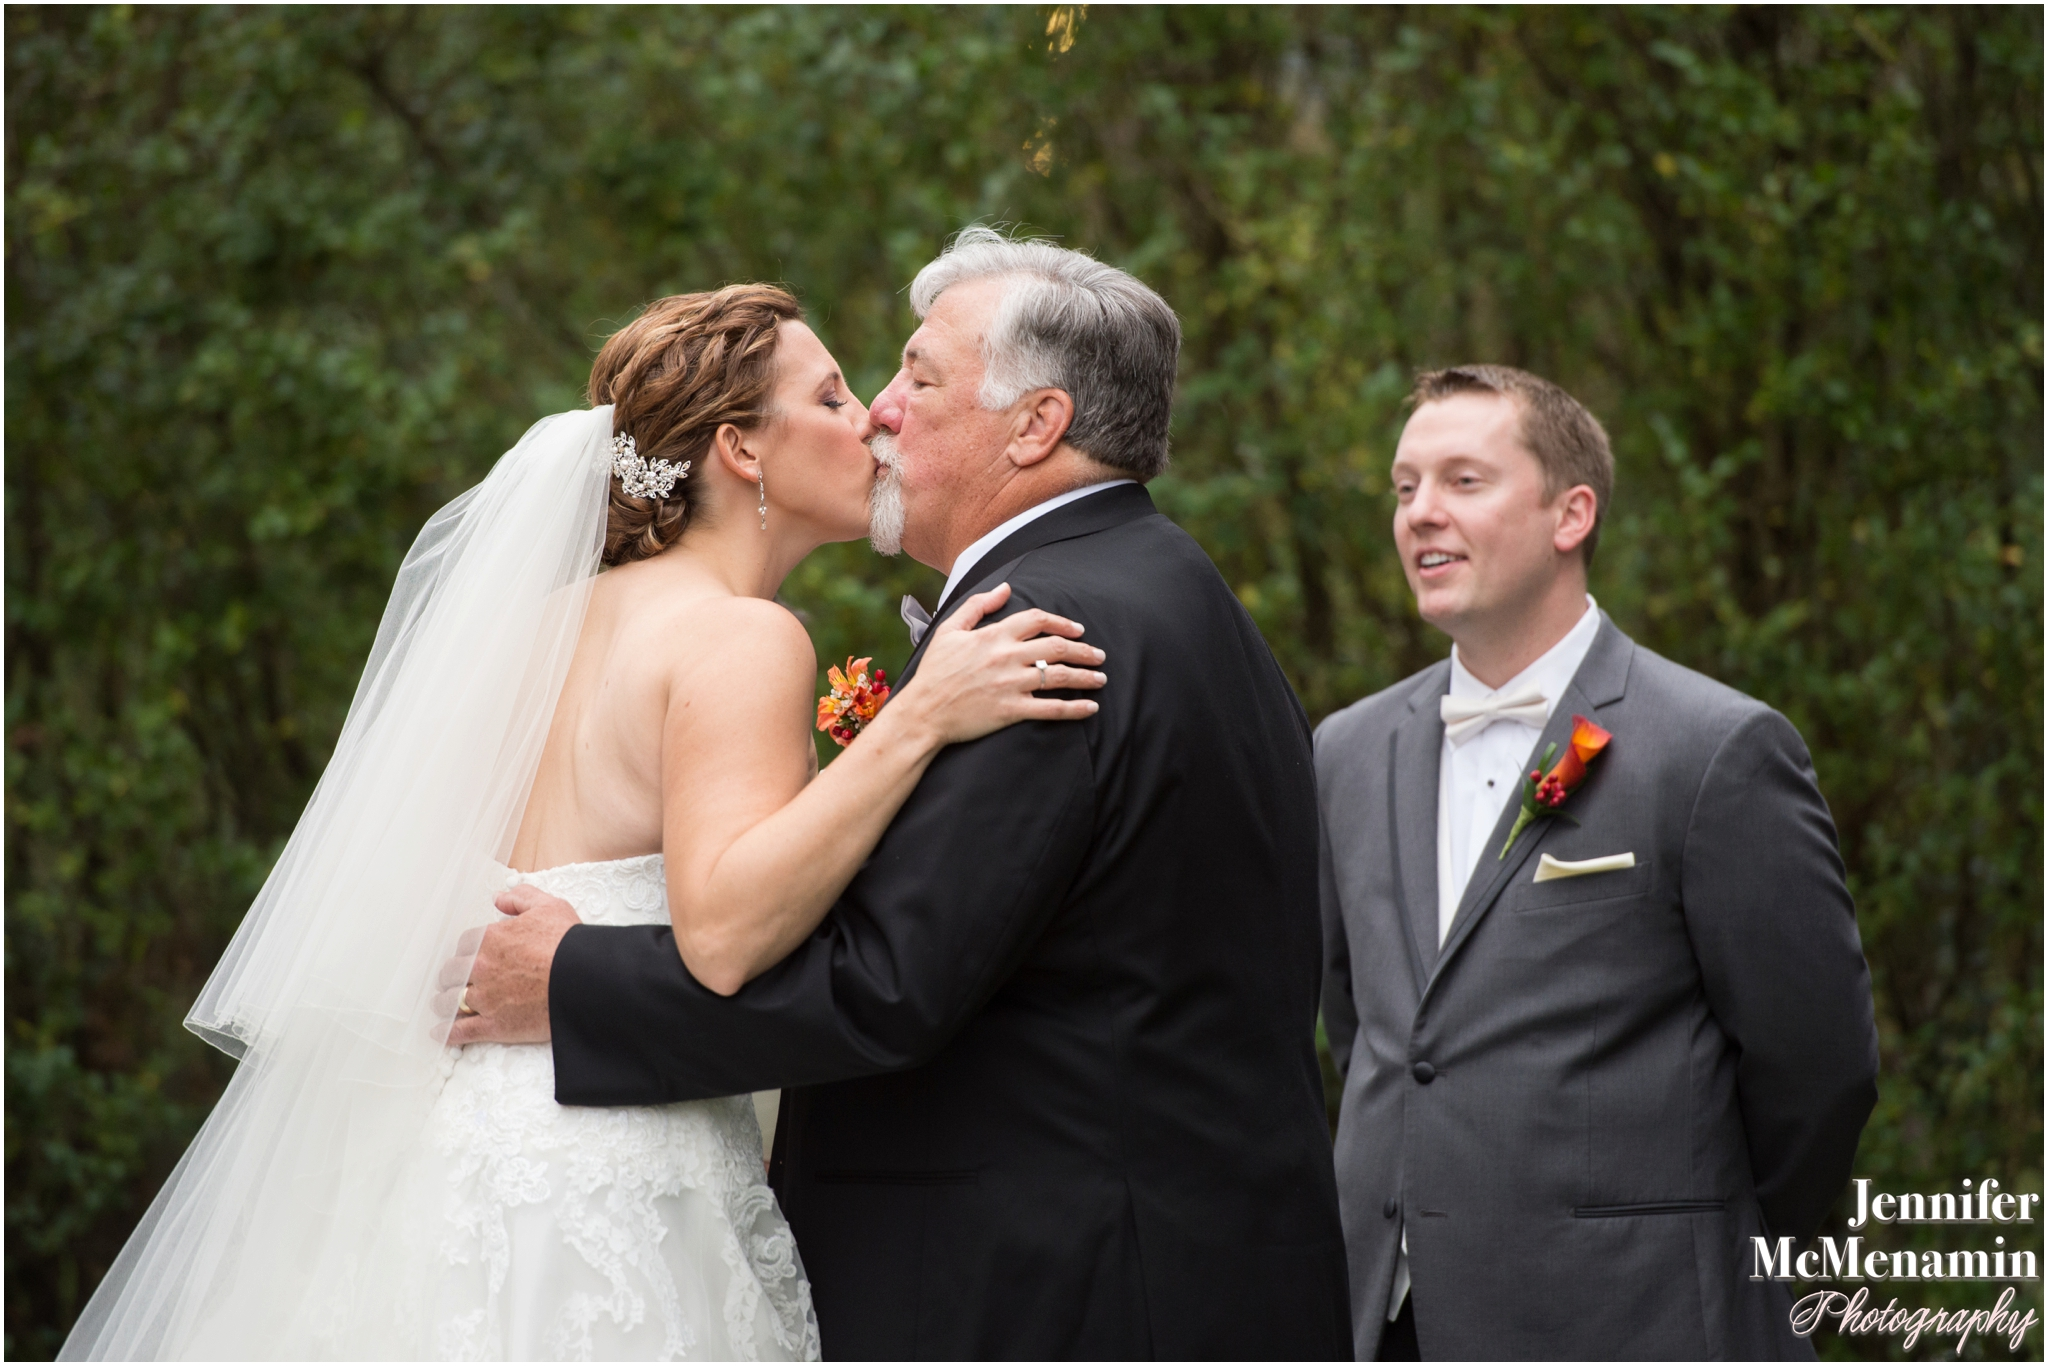 045-HenningMiller_01697-0345_JenniferMcMenaminPhotography_Evergreen-Museum-And-Carriage-House_Evergreen-wedding_Baltimore-wedding-photographer_Baltimore-wedding-photography